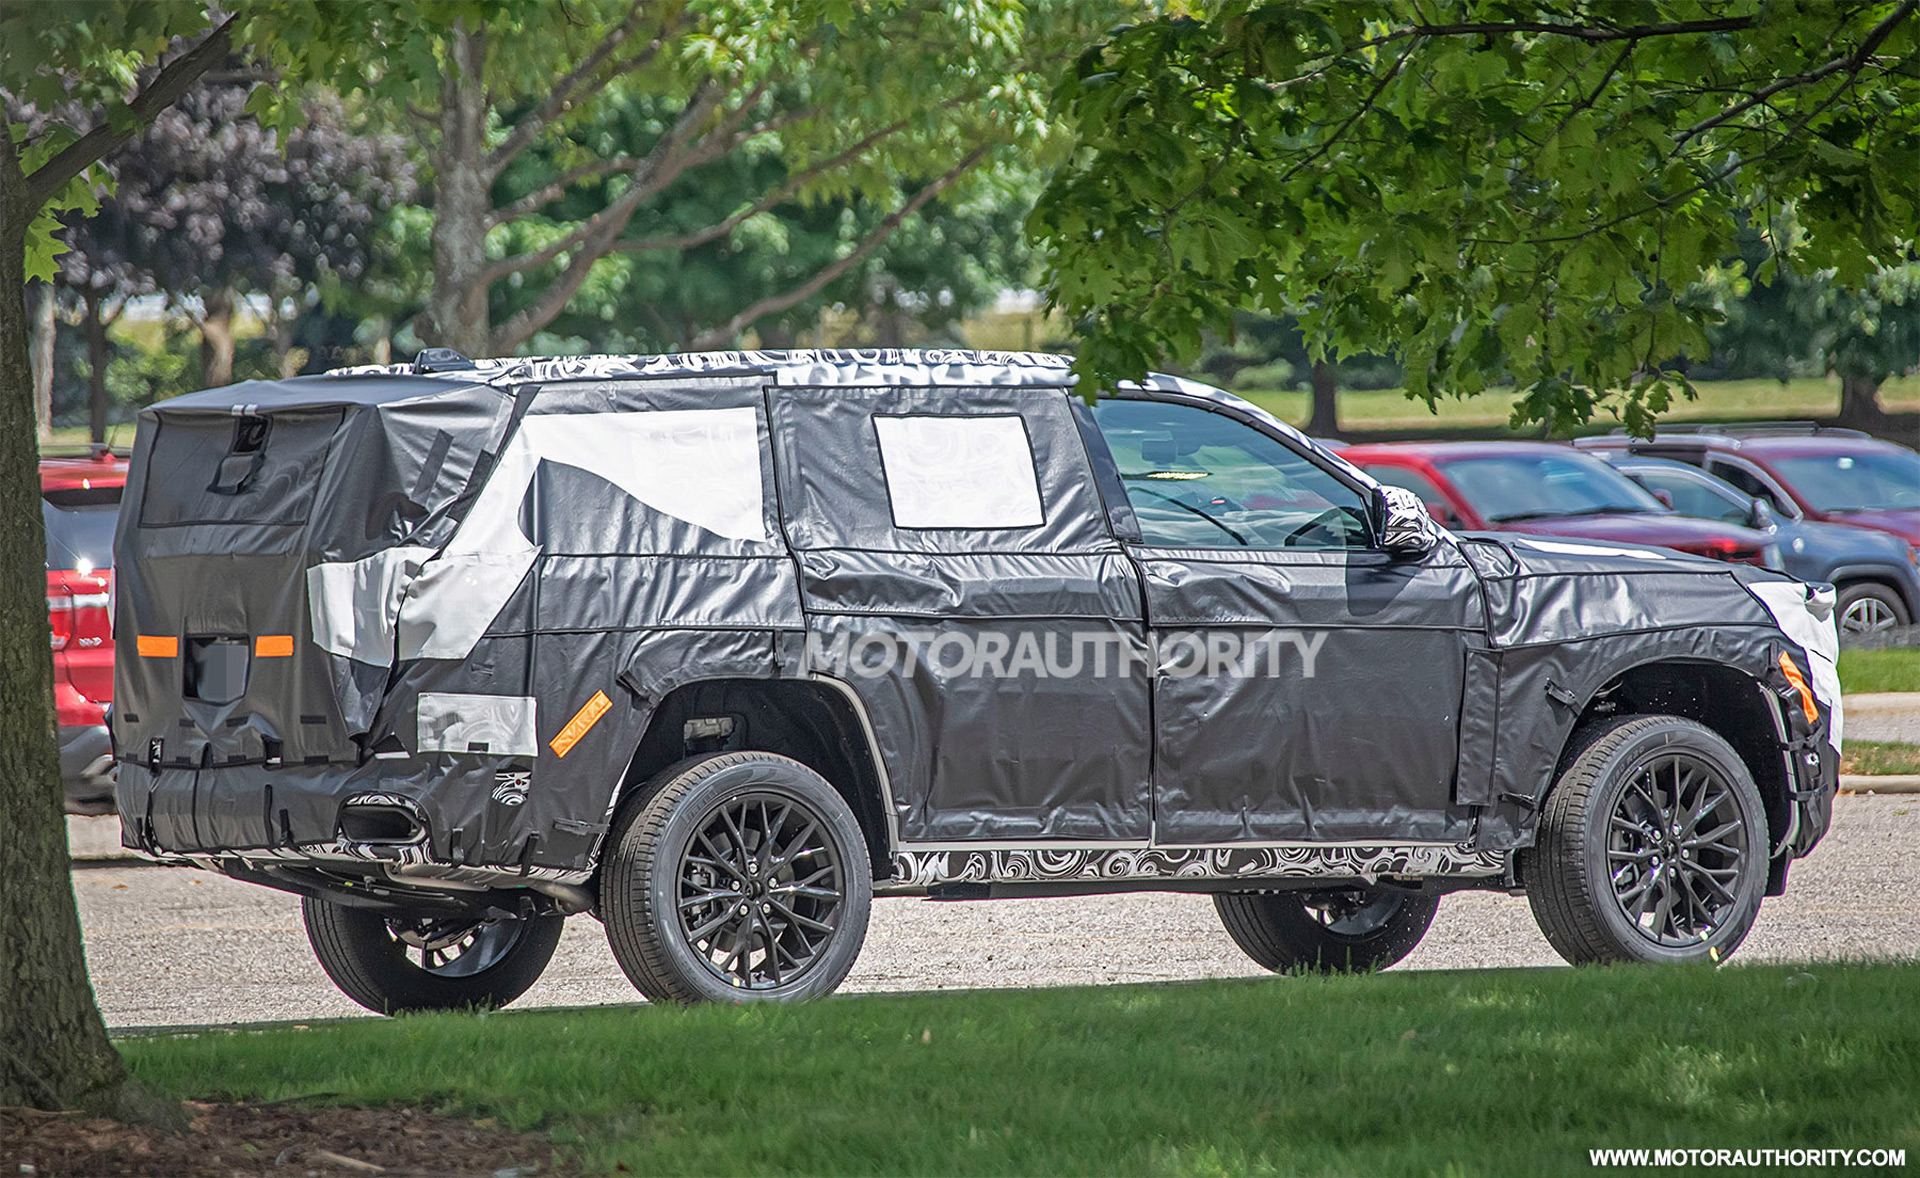 2021 - [Jeep] Grand Cherokee  - Page 2 2022-jeep-grand-cherokee-based-3-row-suv-spy-shots--photo-credit-s-baldauf-sb-medien_100754587_h